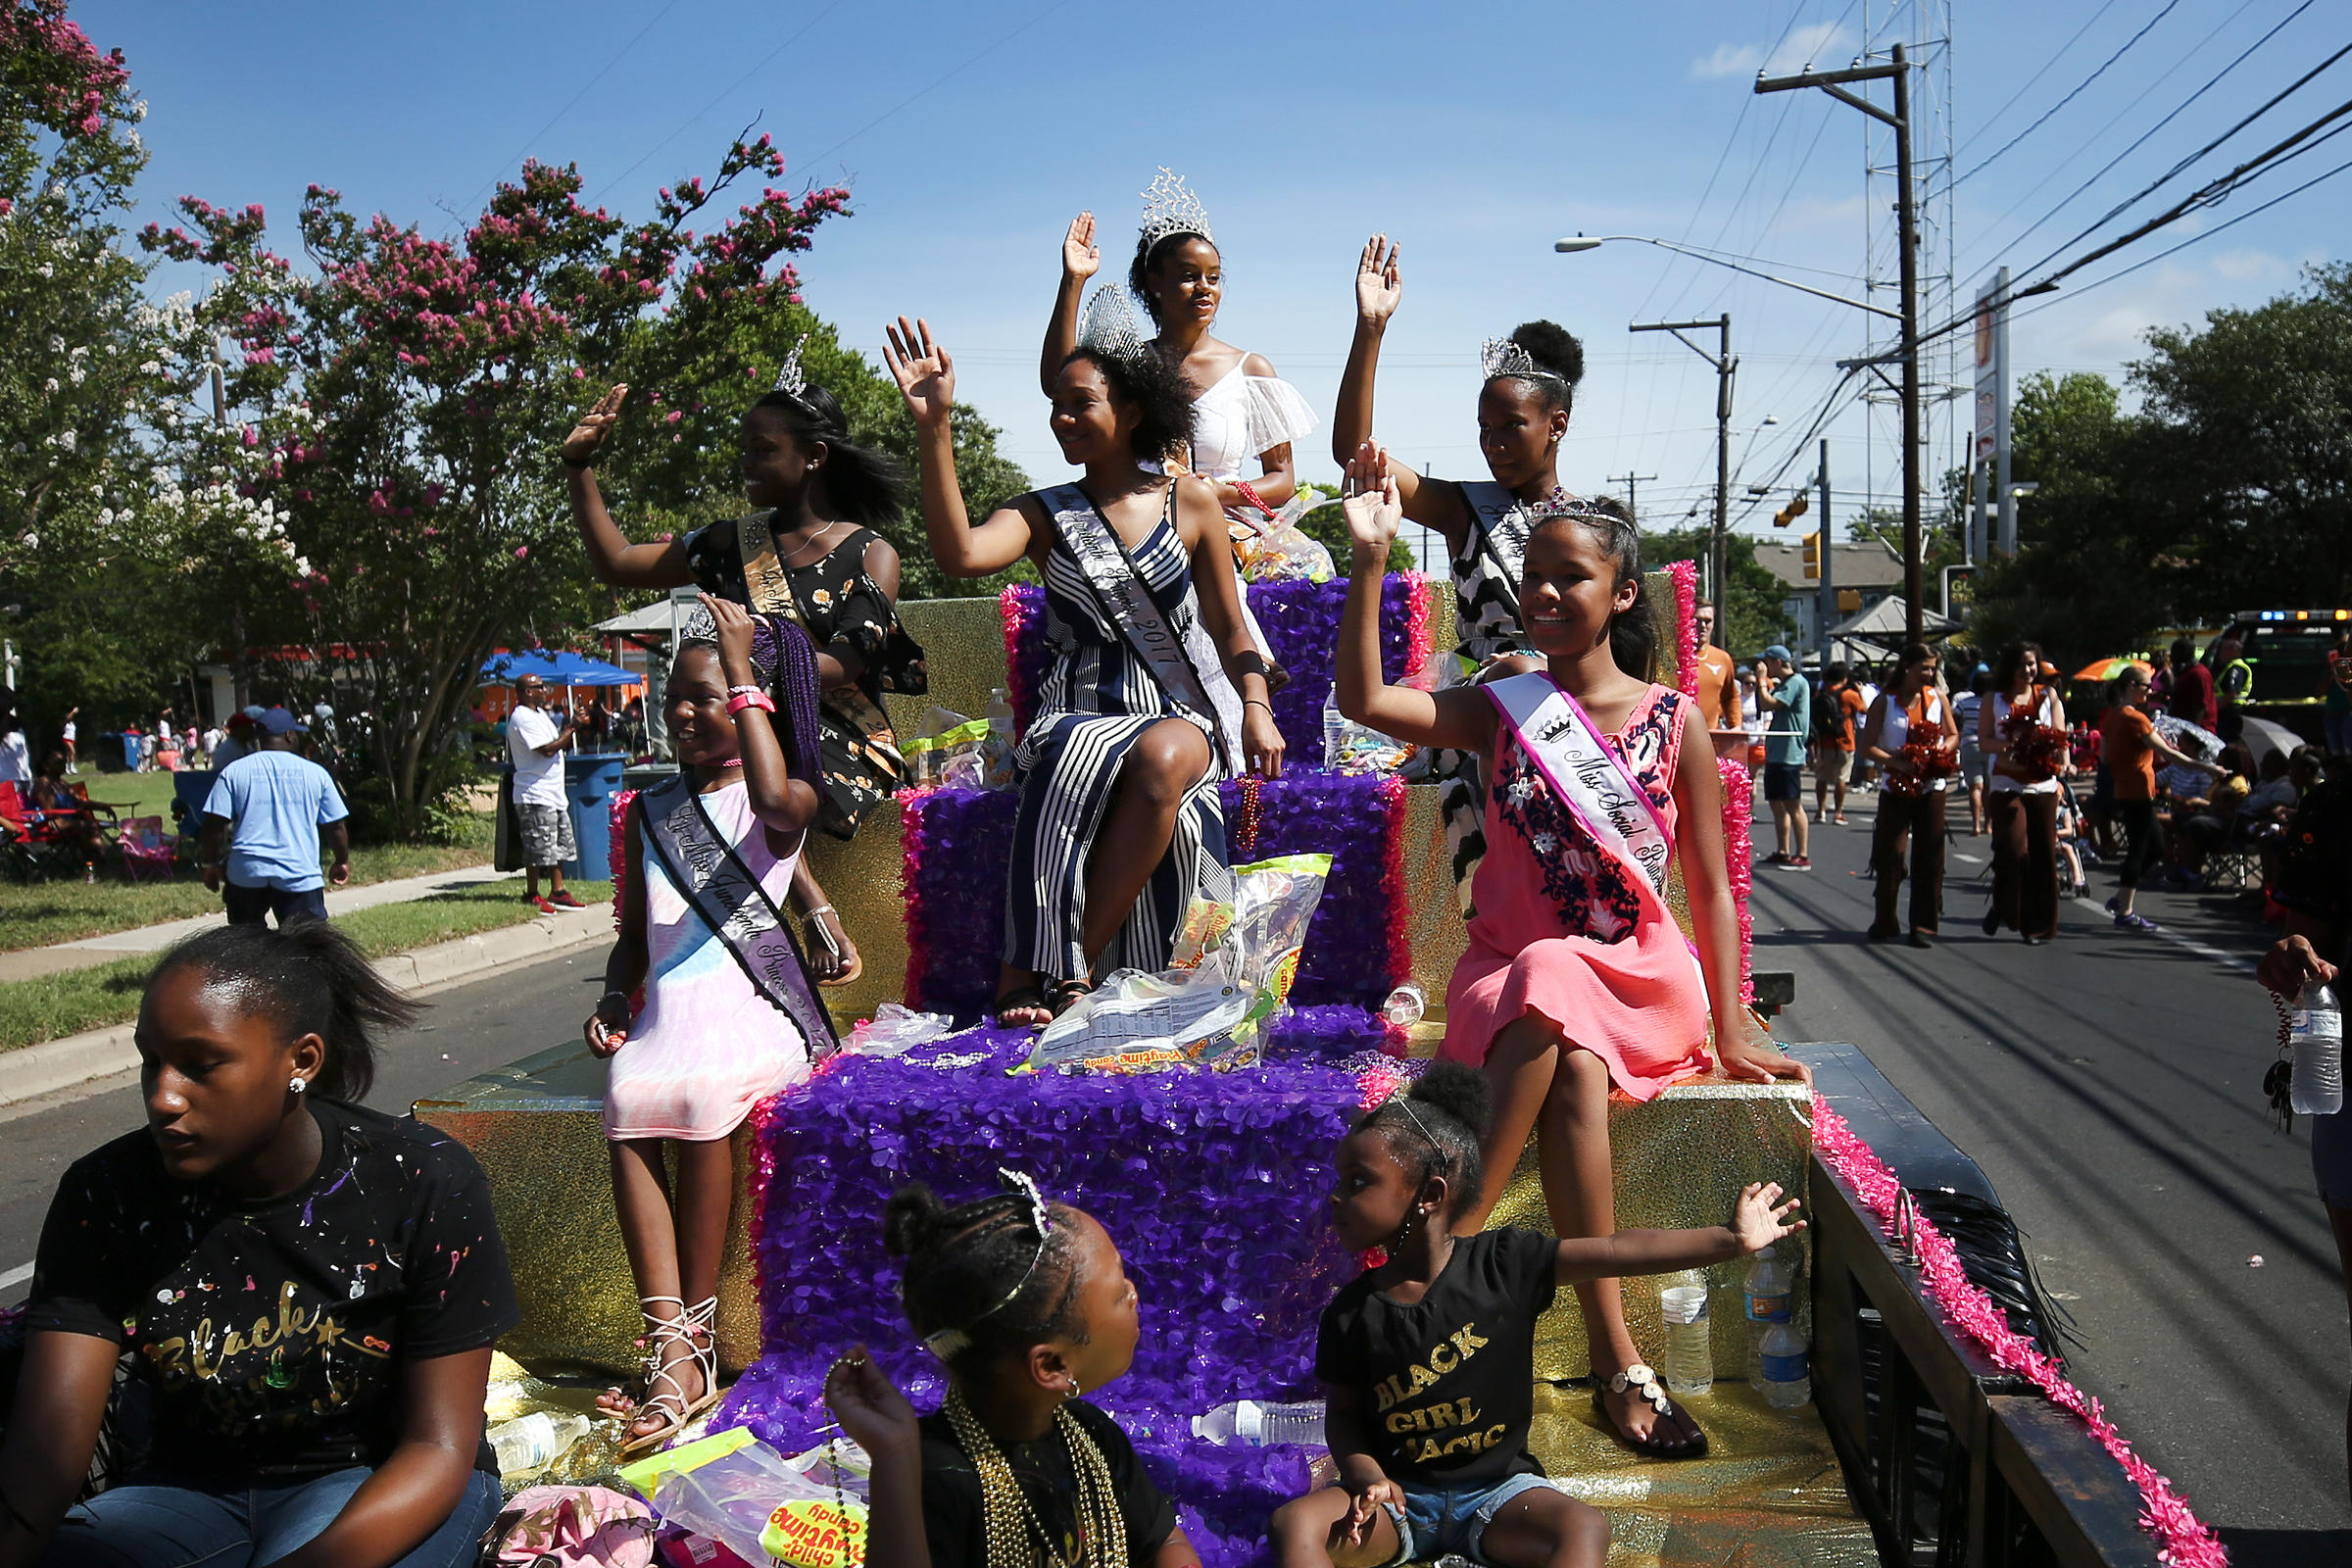 People fill the streets for the Annual Juneteenth Celebration